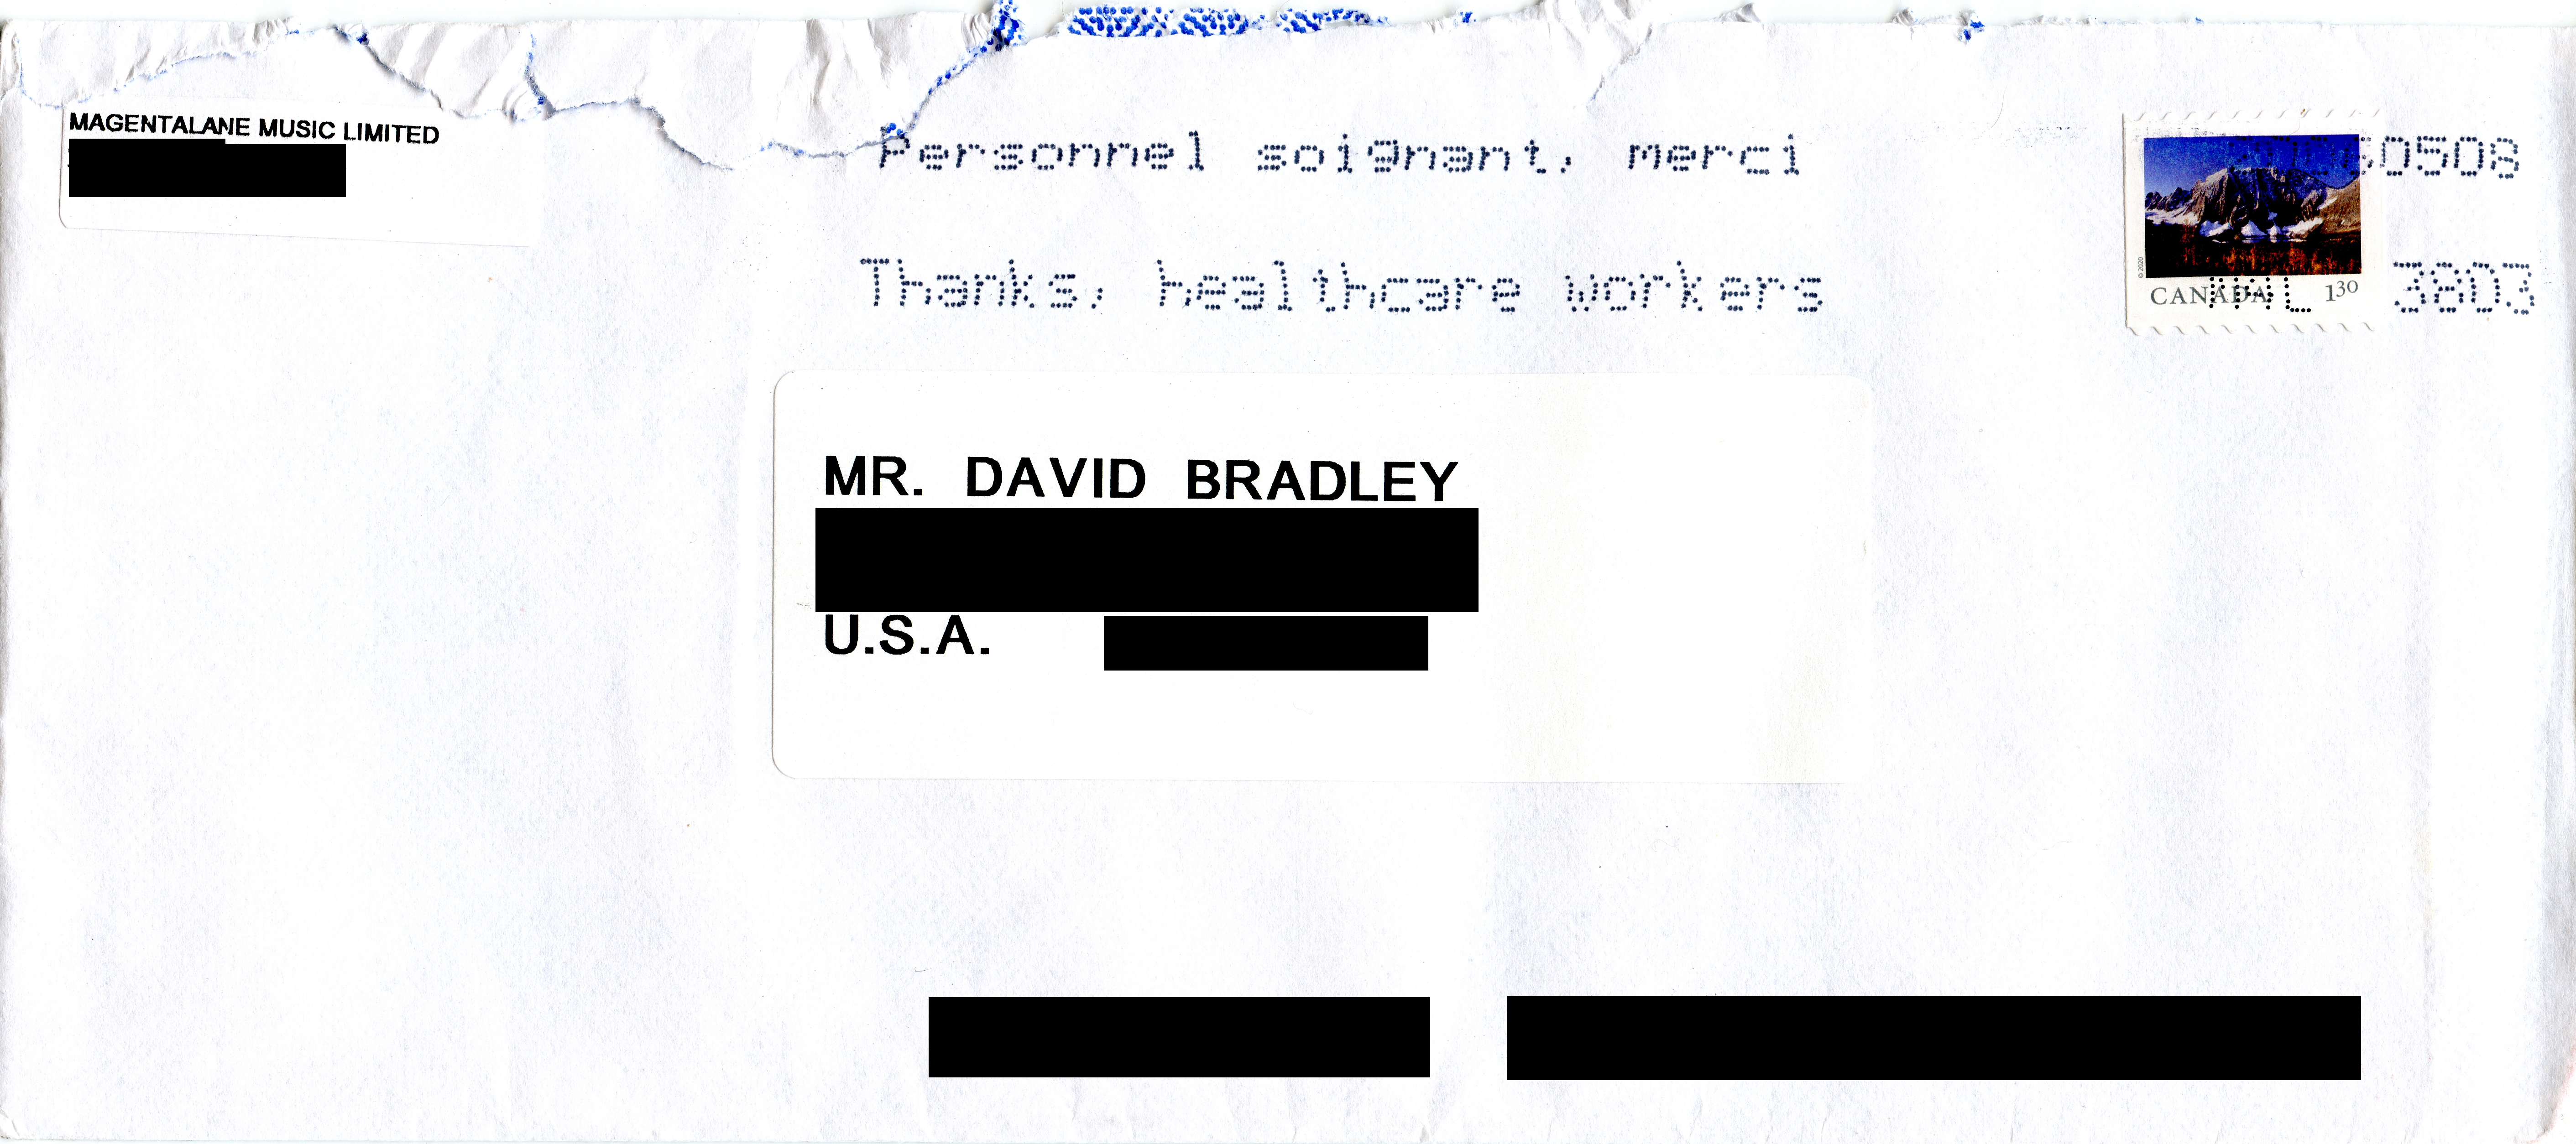 This is a scanned image of the envelope for the letter I received from John Woloschuk.